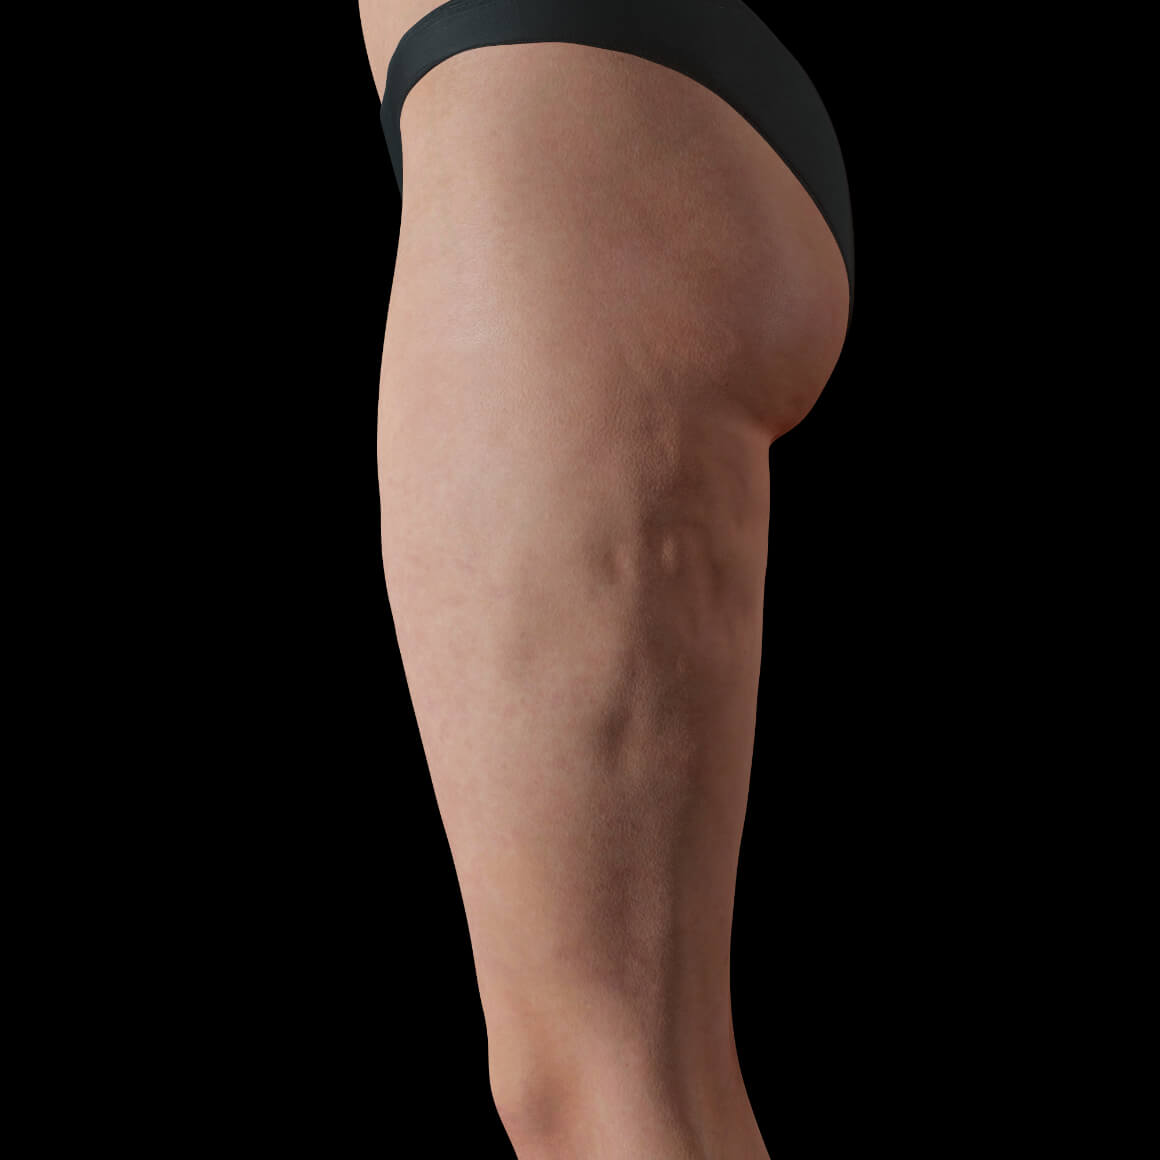 Female patient at Clinique Chloé positioned sideways showing thighs with cellulite